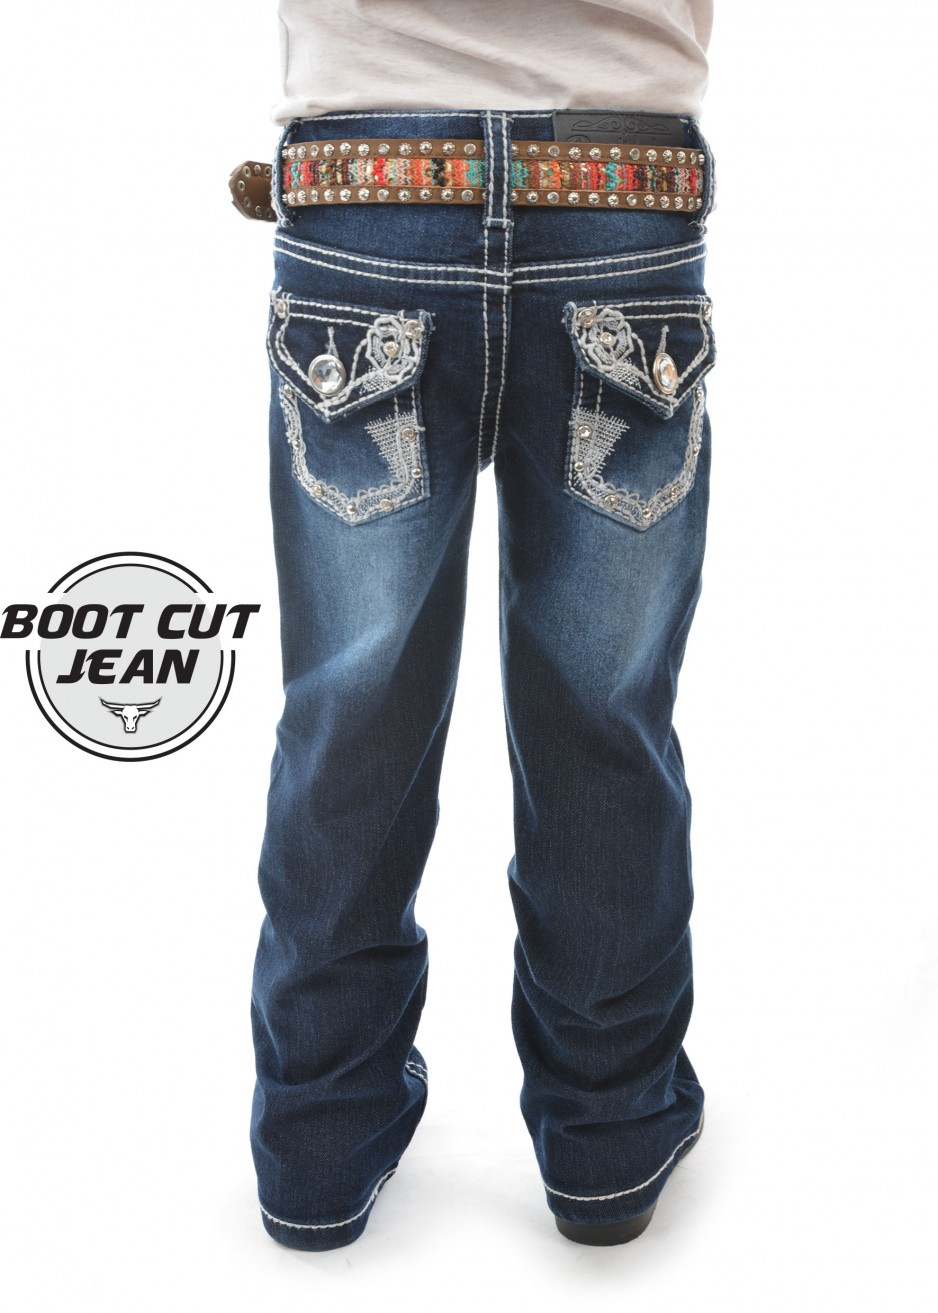 GIRLS DAISY BOOT CUT JEAN